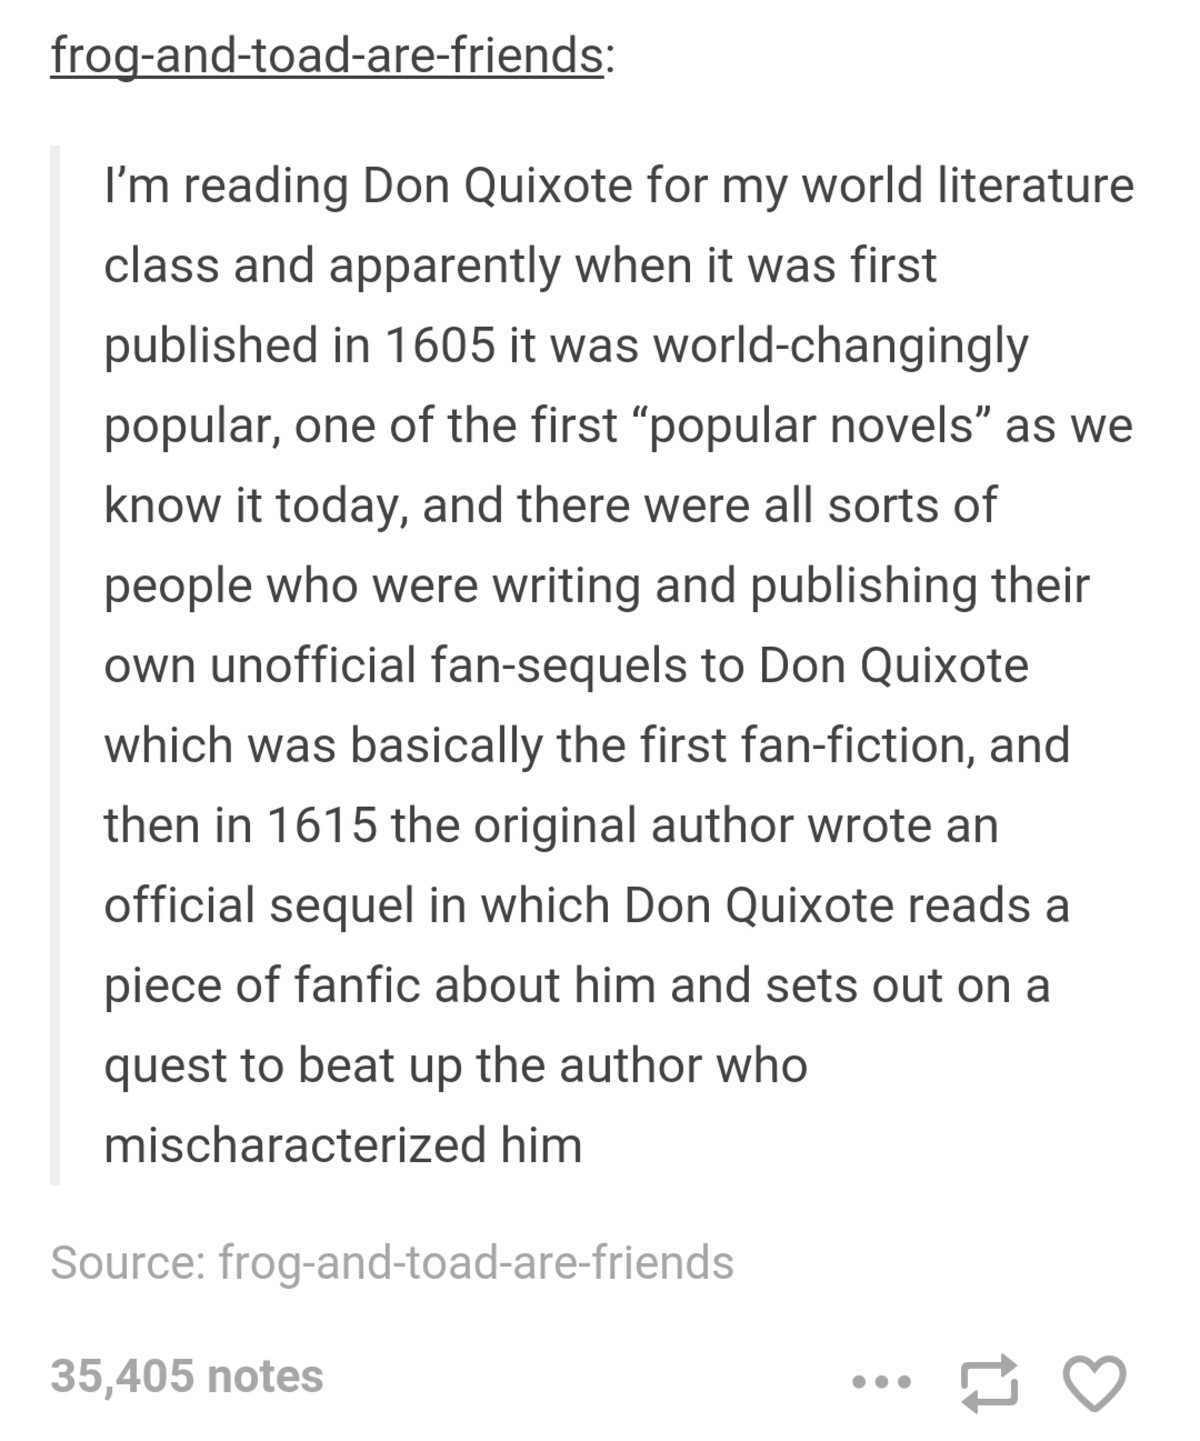 Don Quixote. .. Love these kind of things. Iirc, when Arthur conan doyle finished sherlock Holmes, there was such an uproar that he had to retroactively retcon the ending to ha